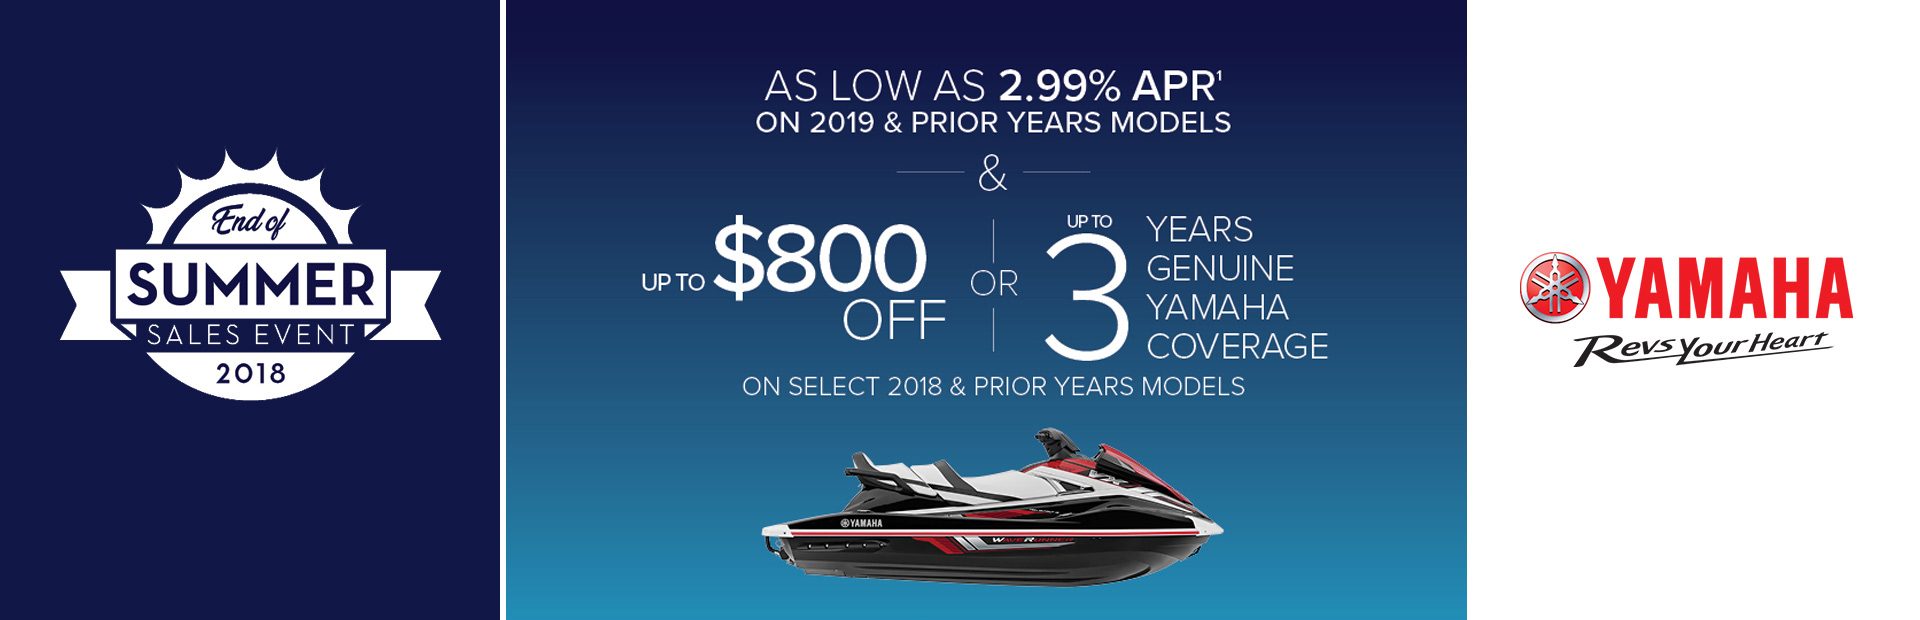 Yamaha: End of Season Sales Event - As Low As 2.99% APR